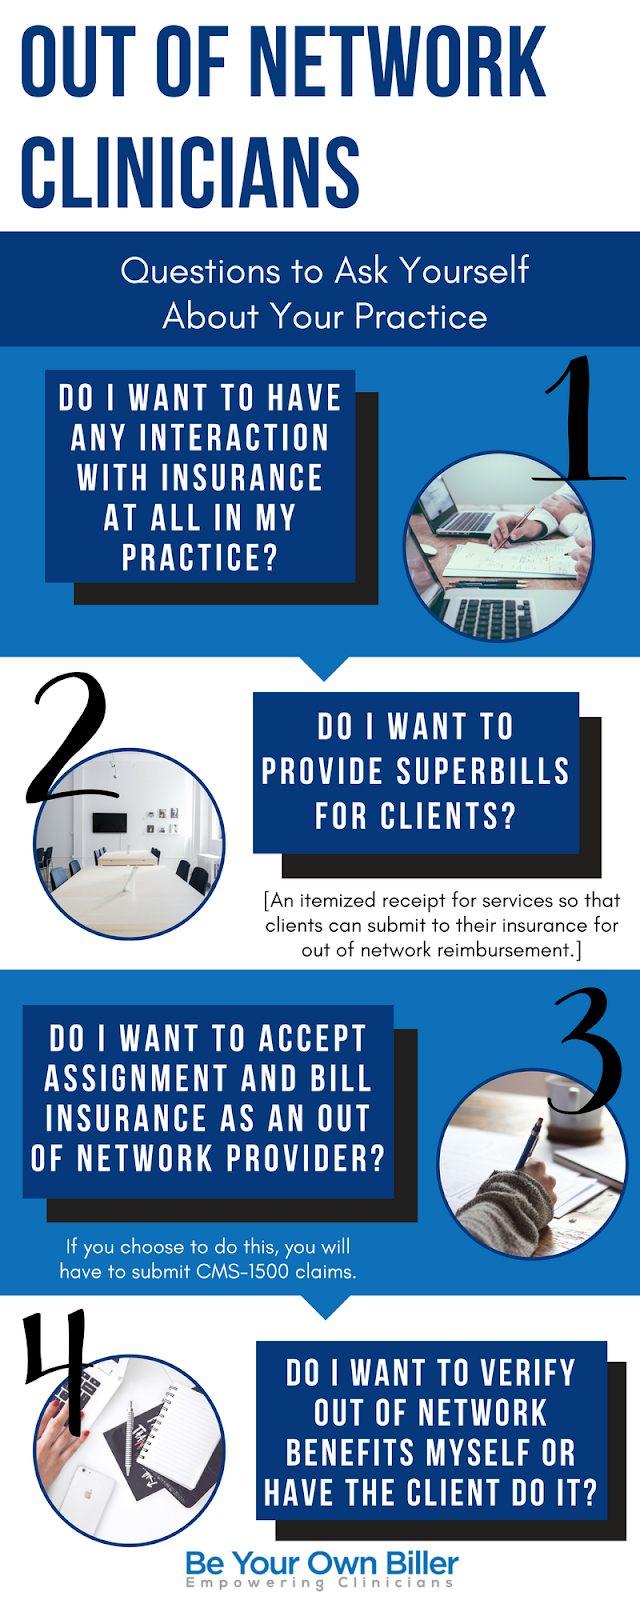 Guest post by Danielle Kepler of beyourownbiller.com I recommend every clinician in-network or out-of-network mention insurance on their website, even if you do not accept any insurance and want nothing to do with it. Let's face it, you can't avoid at least some interaction with it.